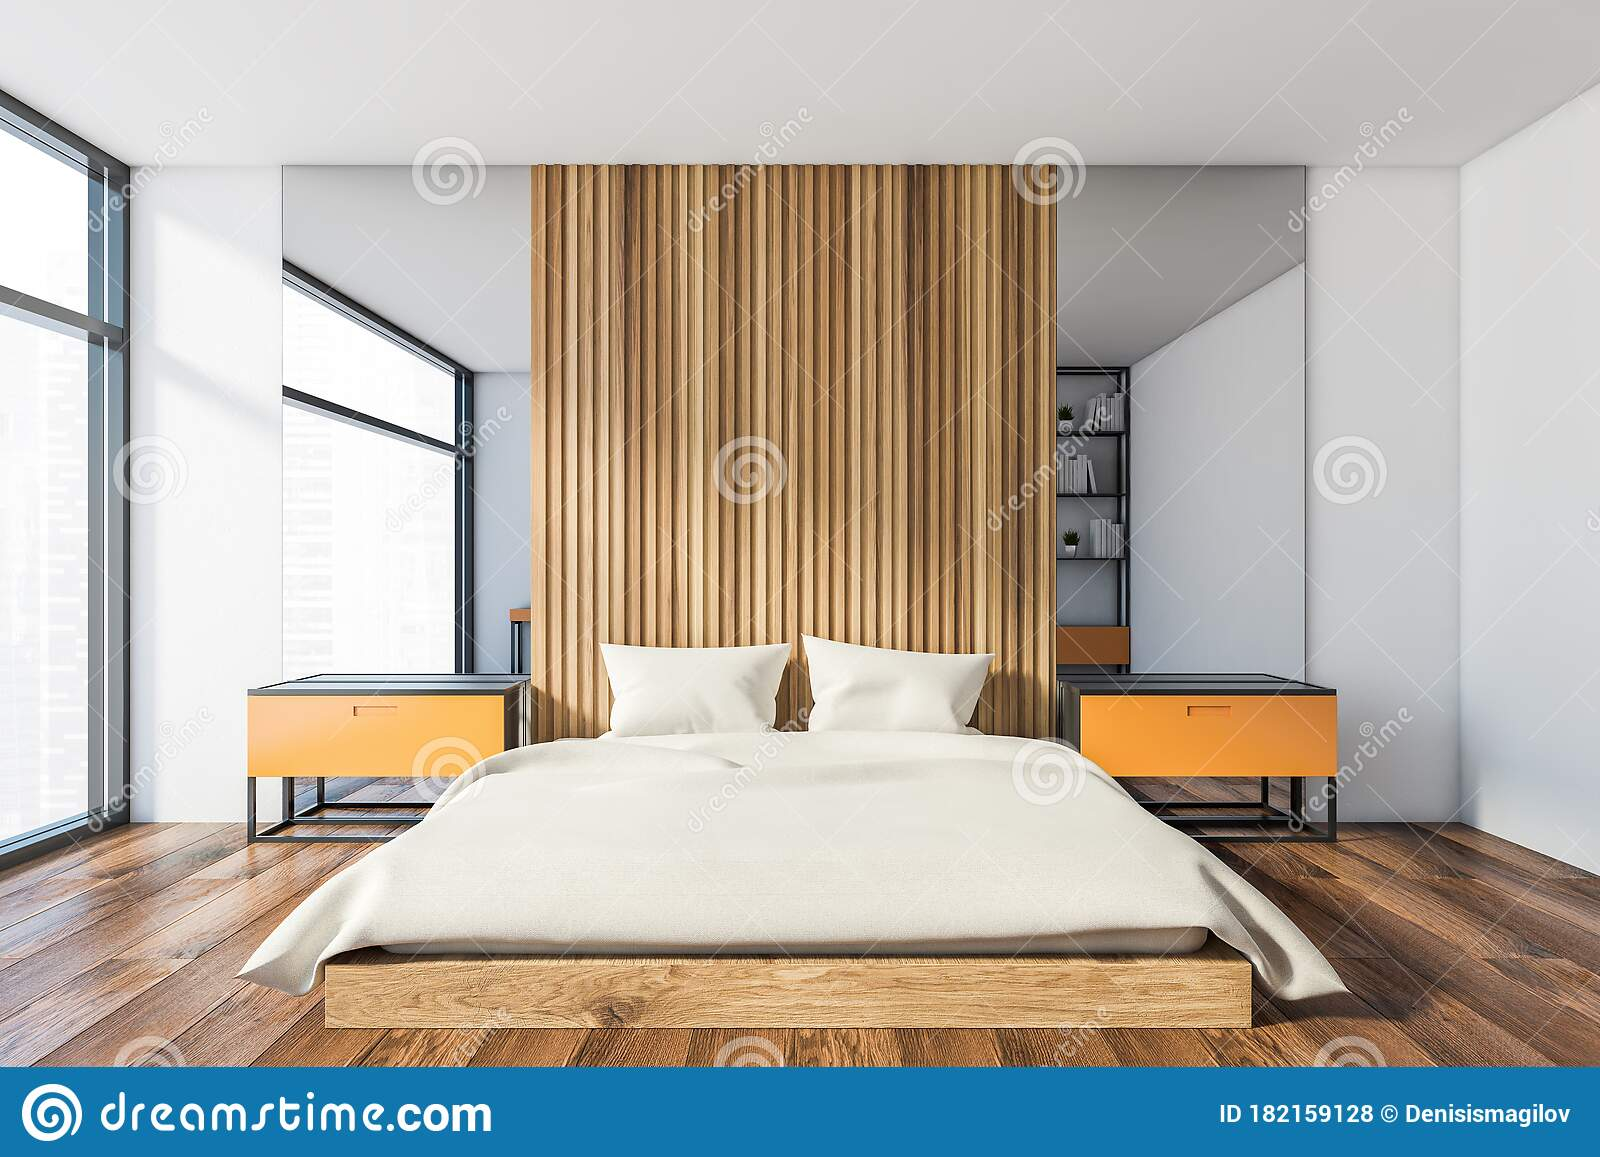 White And Orange Master Bedroom With Mirror Stock Illustration Illustration Of Empty Furniture 182159128